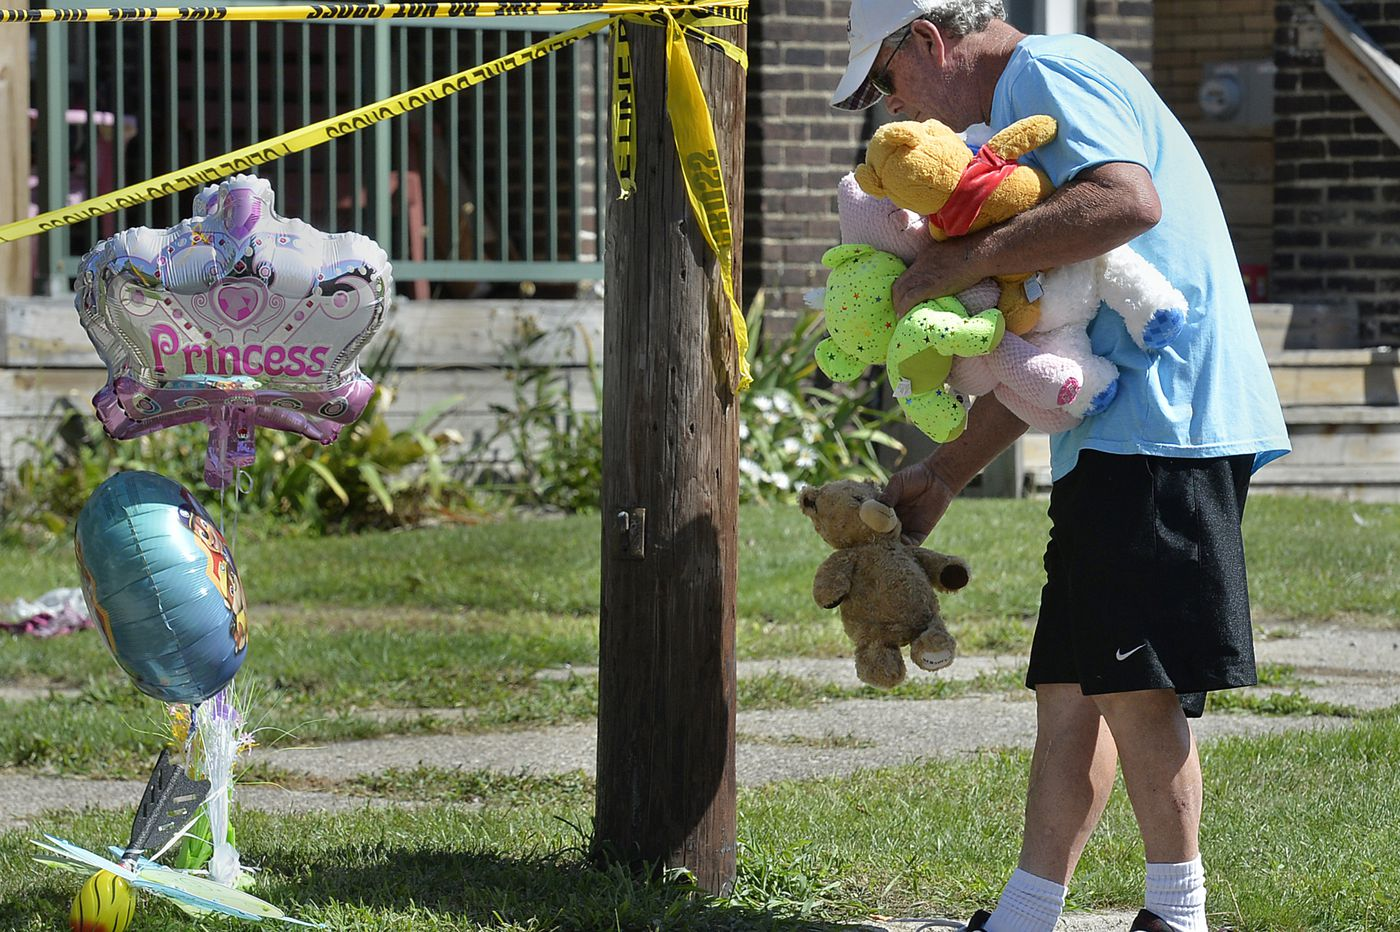 5 children killed in fire at Pennsylvania day care center